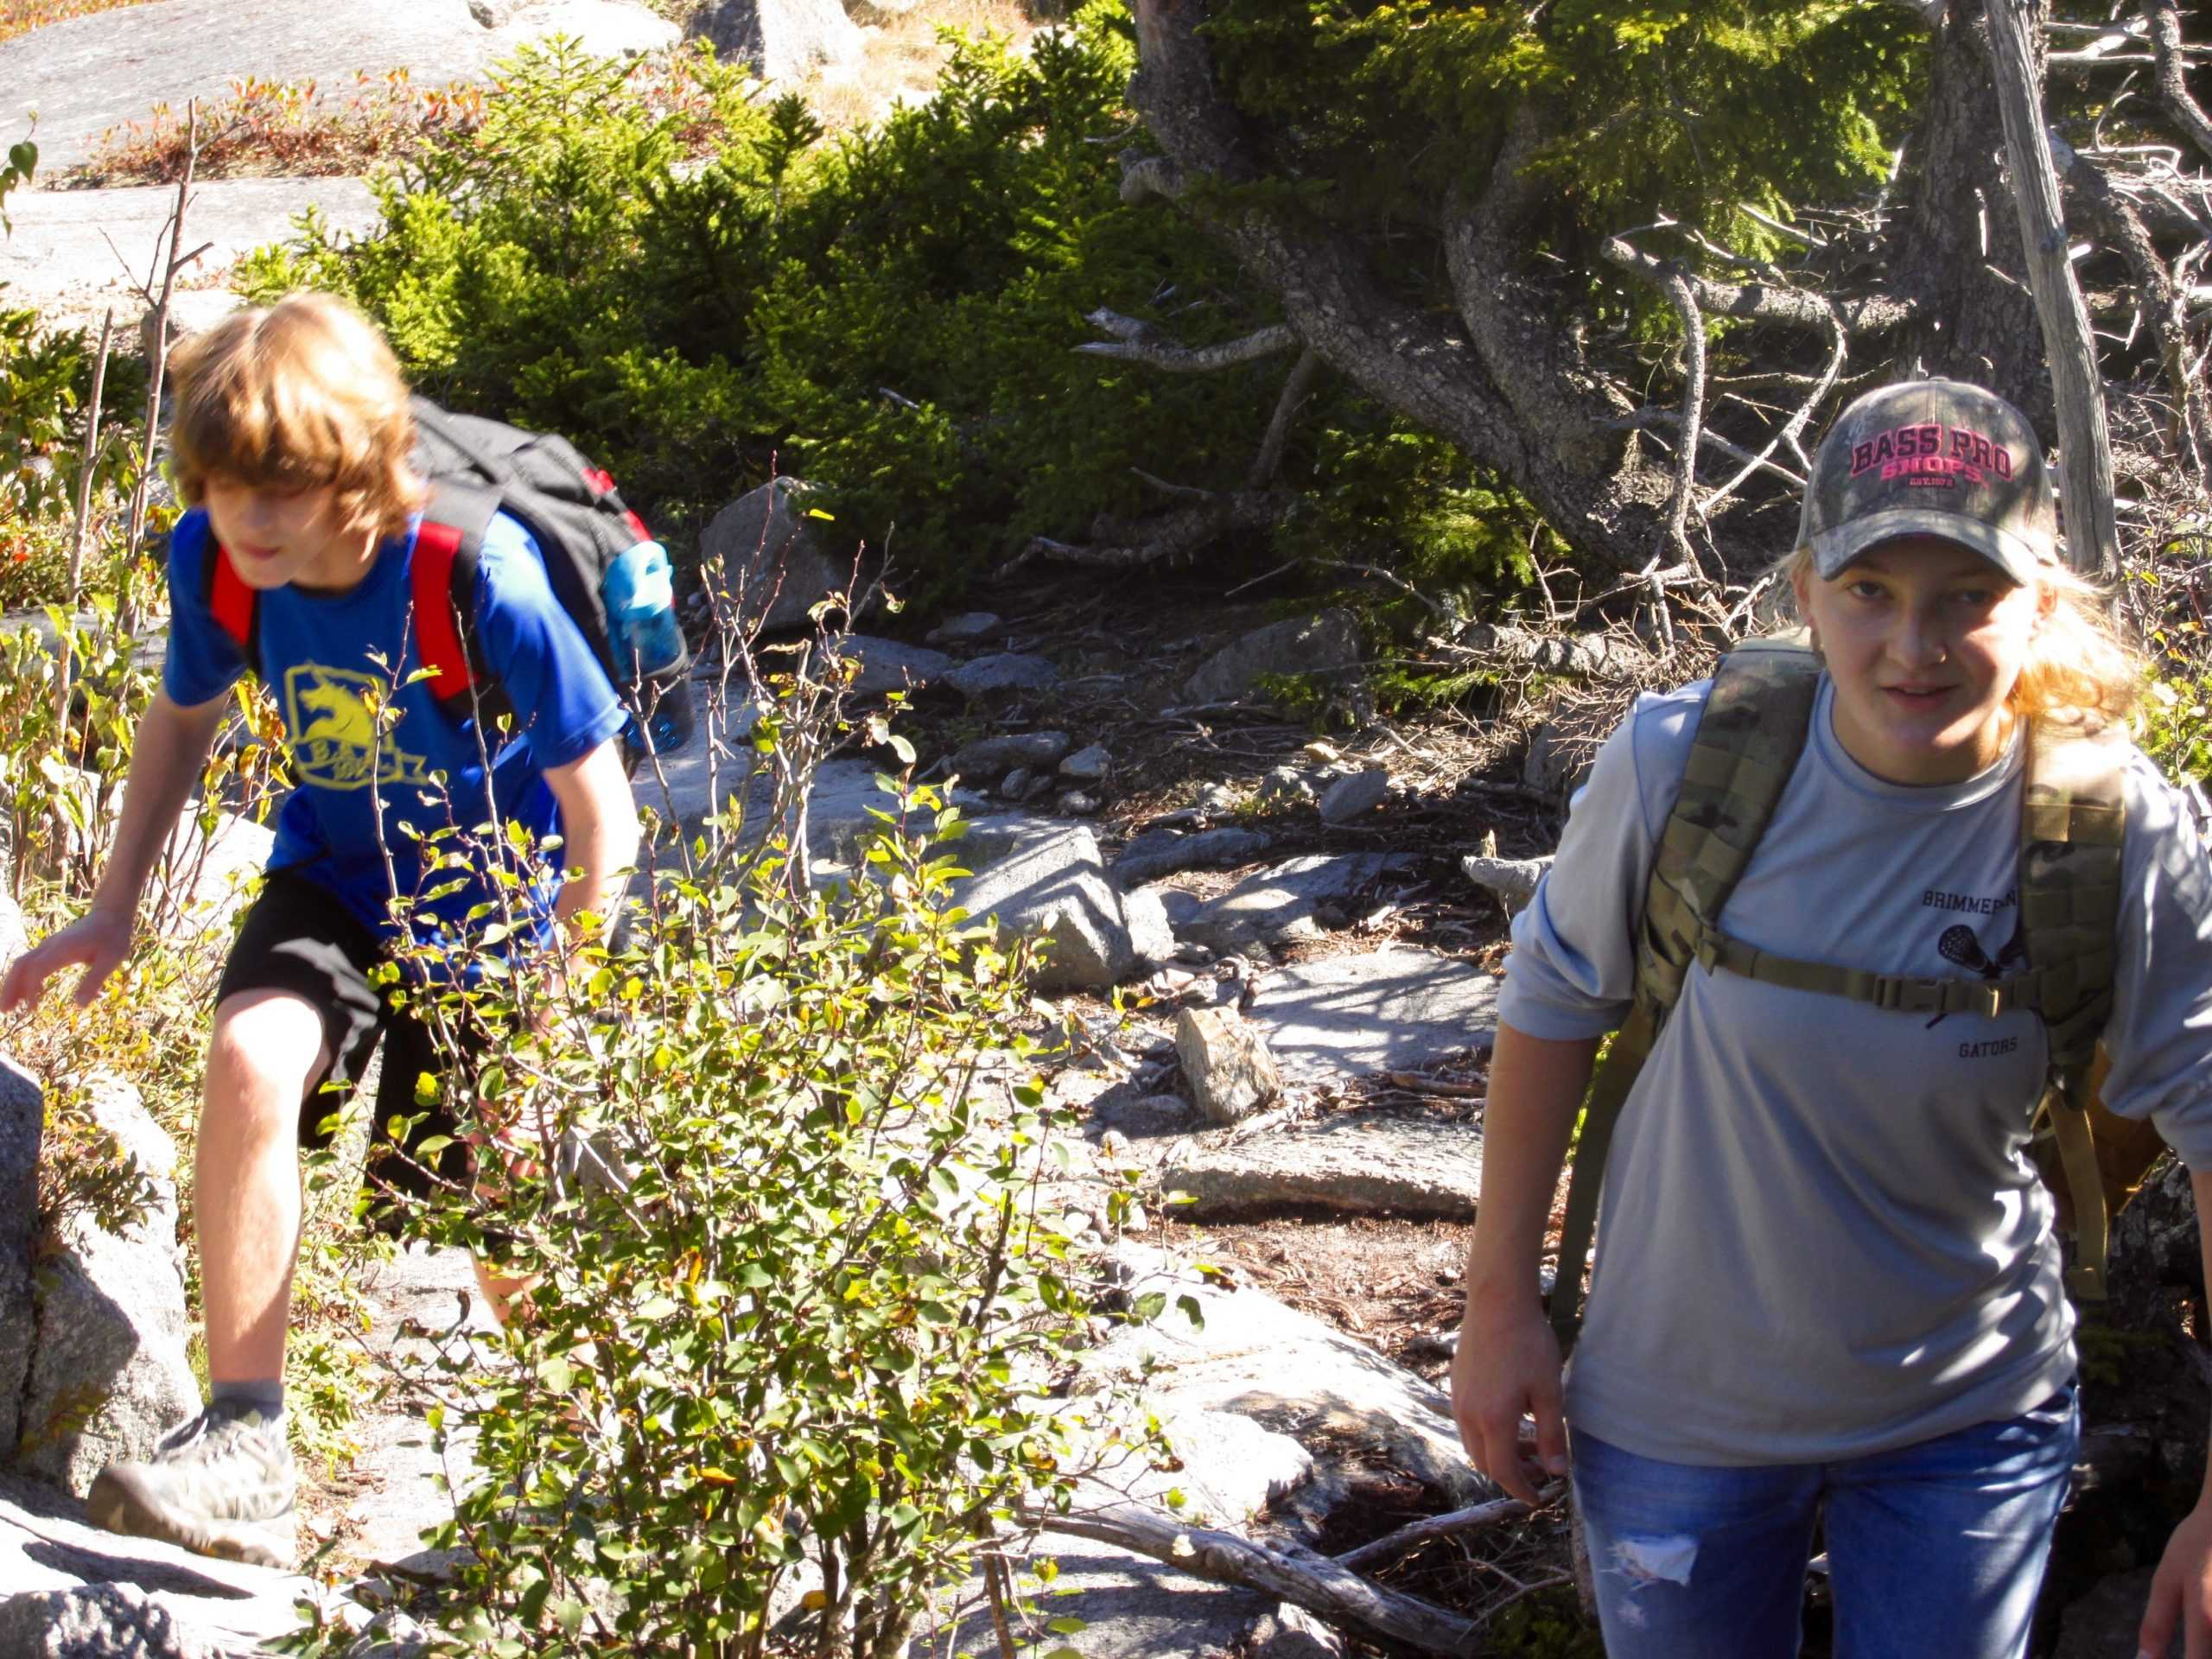 Students+learned+leadership+skills+working+together+in+the+wilderness.+